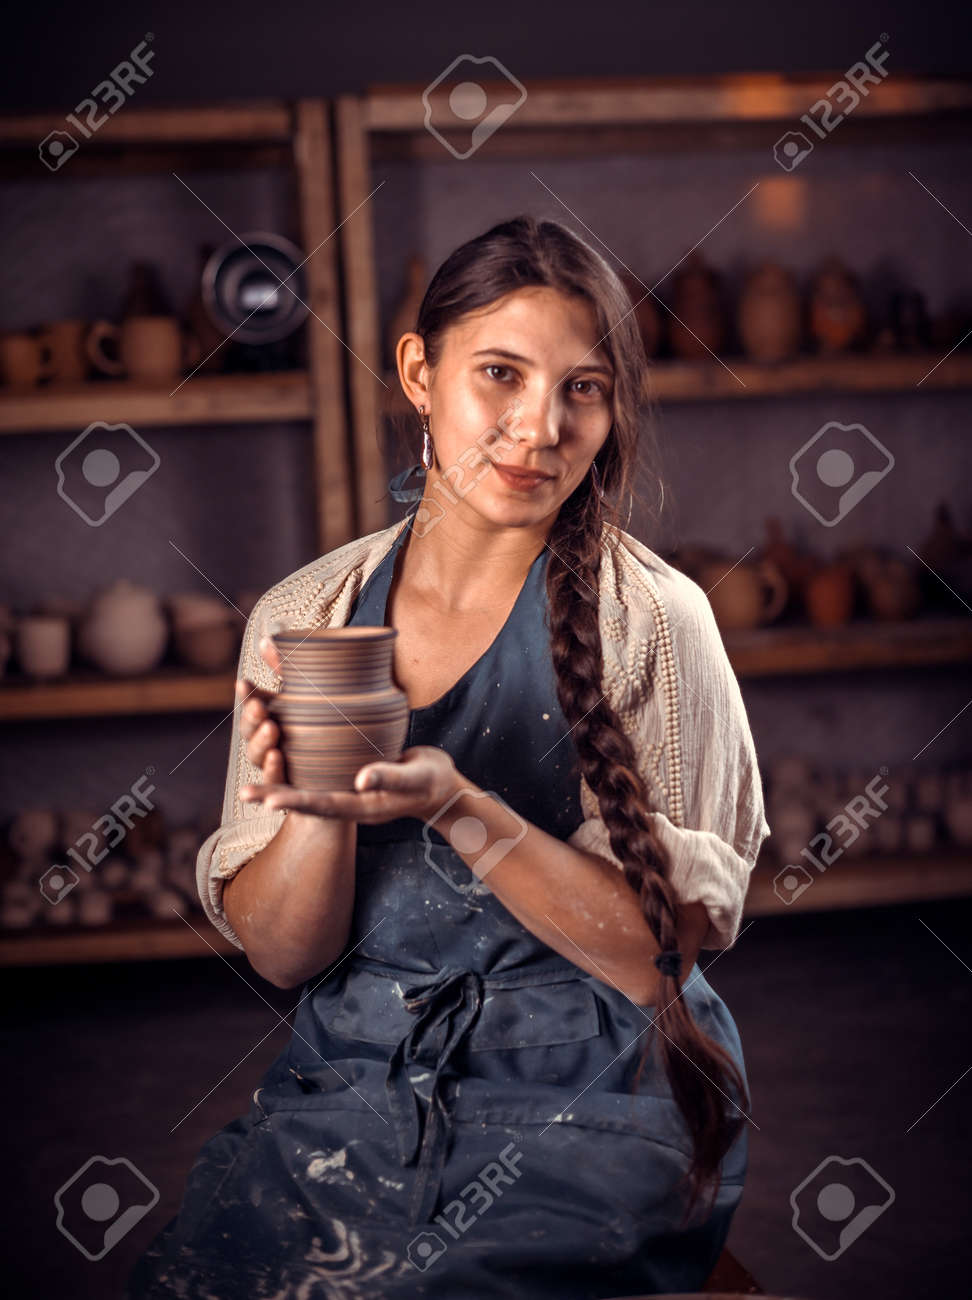 Charming Ceramist Woman Shows How To Work With Clay And Pottery Stock Photo Picture And Royalty Free Image Image 158908462